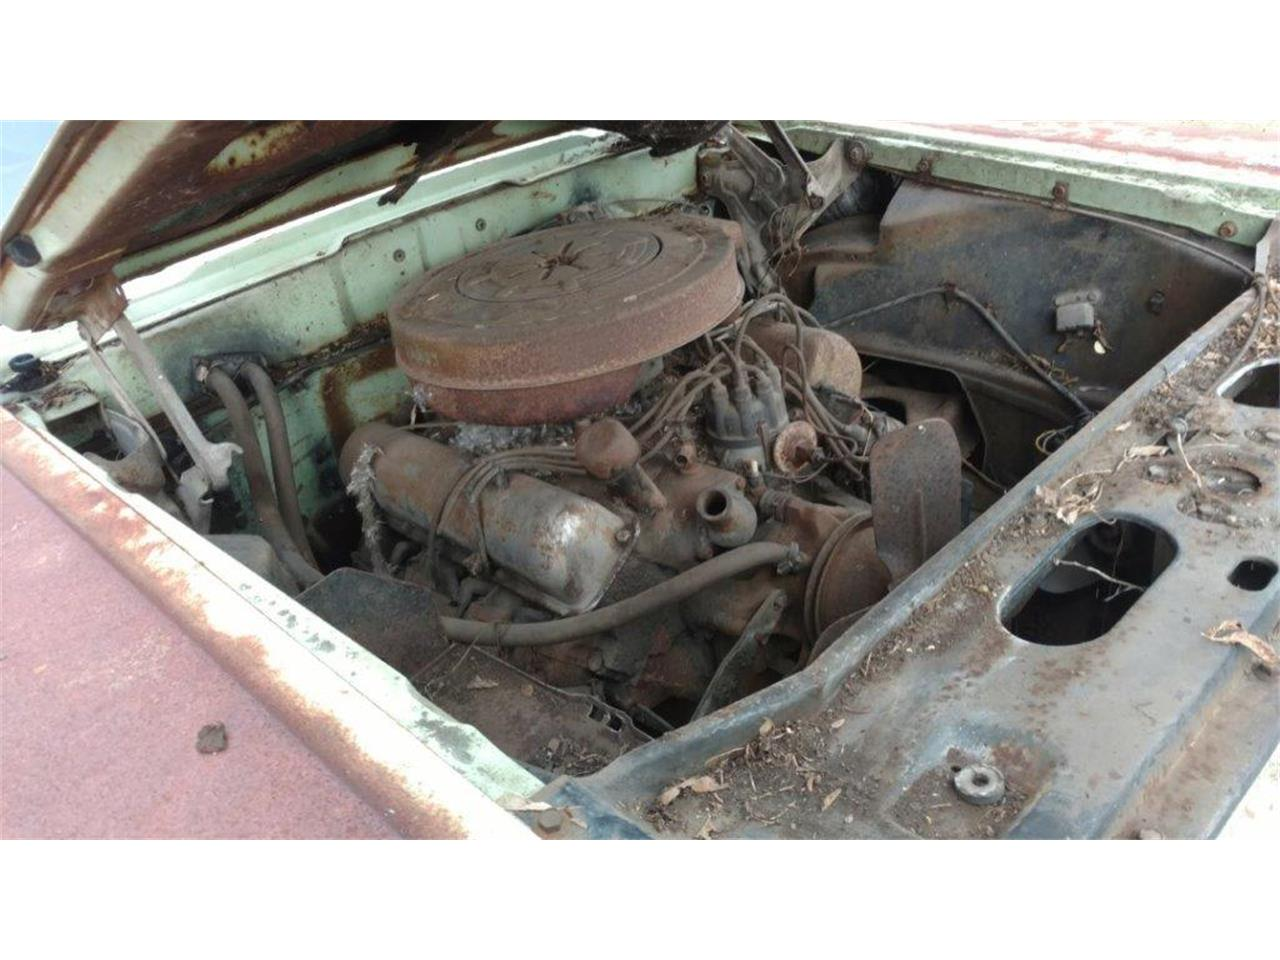 Large Picture of 1959 Edsel Villager located in Minnesota - $1,800.00 Offered by Dan's Old Cars - MCSU